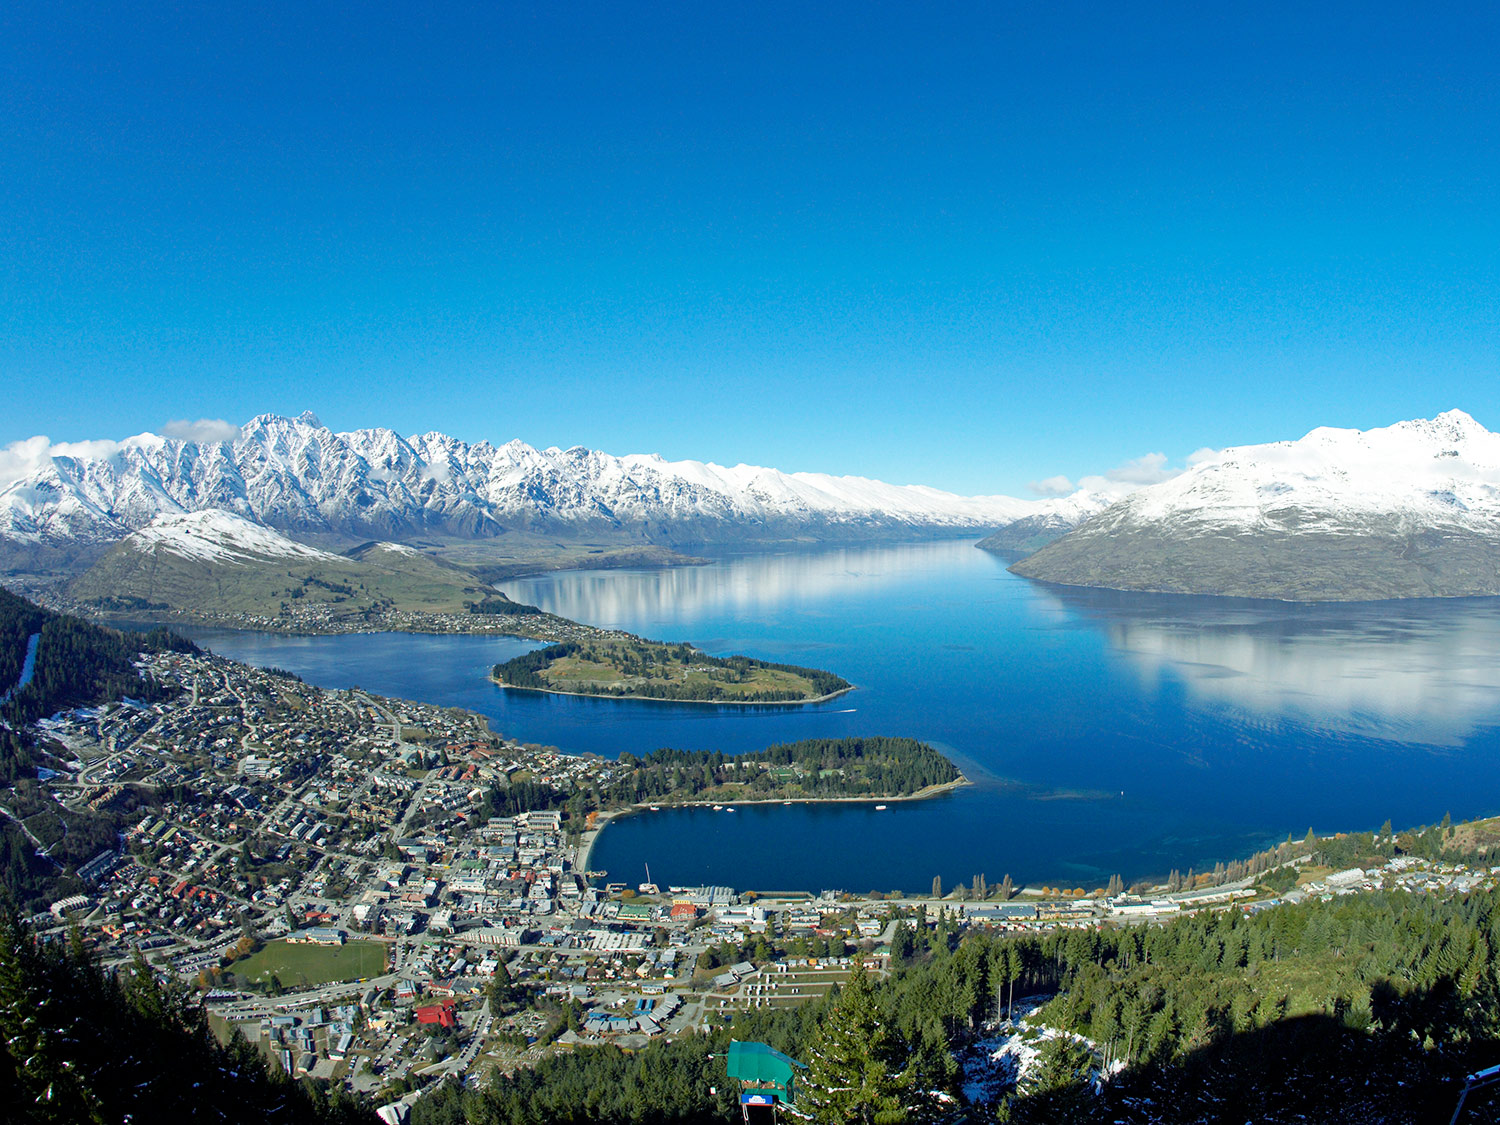 Oaks Shores Queenstown